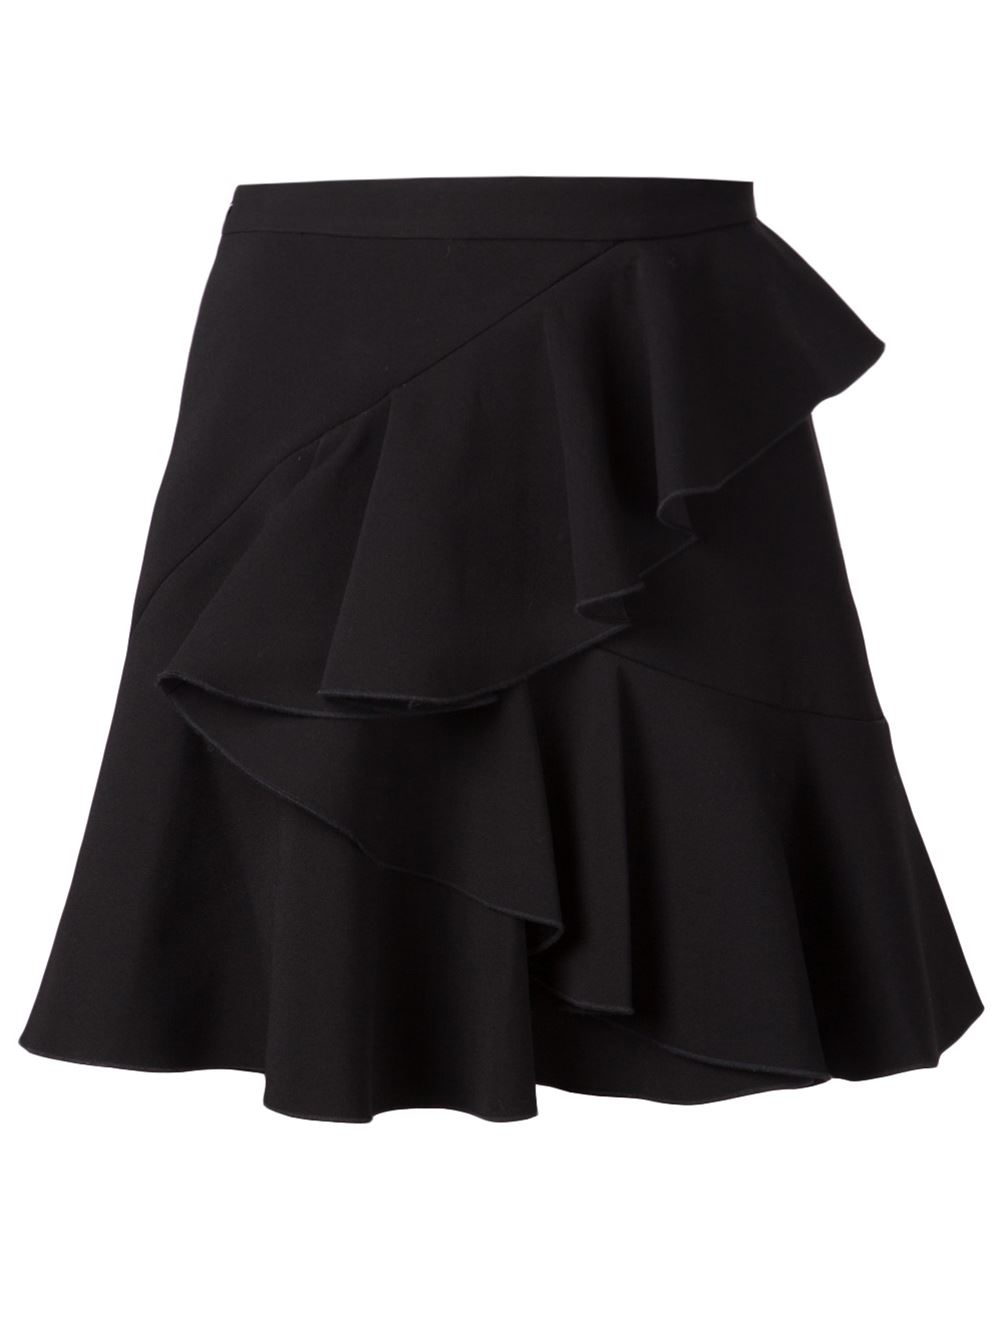 You searched for: black ruffle skirt! Etsy is the home to thousands of handmade, vintage, and one-of-a-kind products and gifts related to your search. No matter what you're looking for or where you are in the world, our global marketplace of sellers can help you find unique and affordable options. Let's get started!